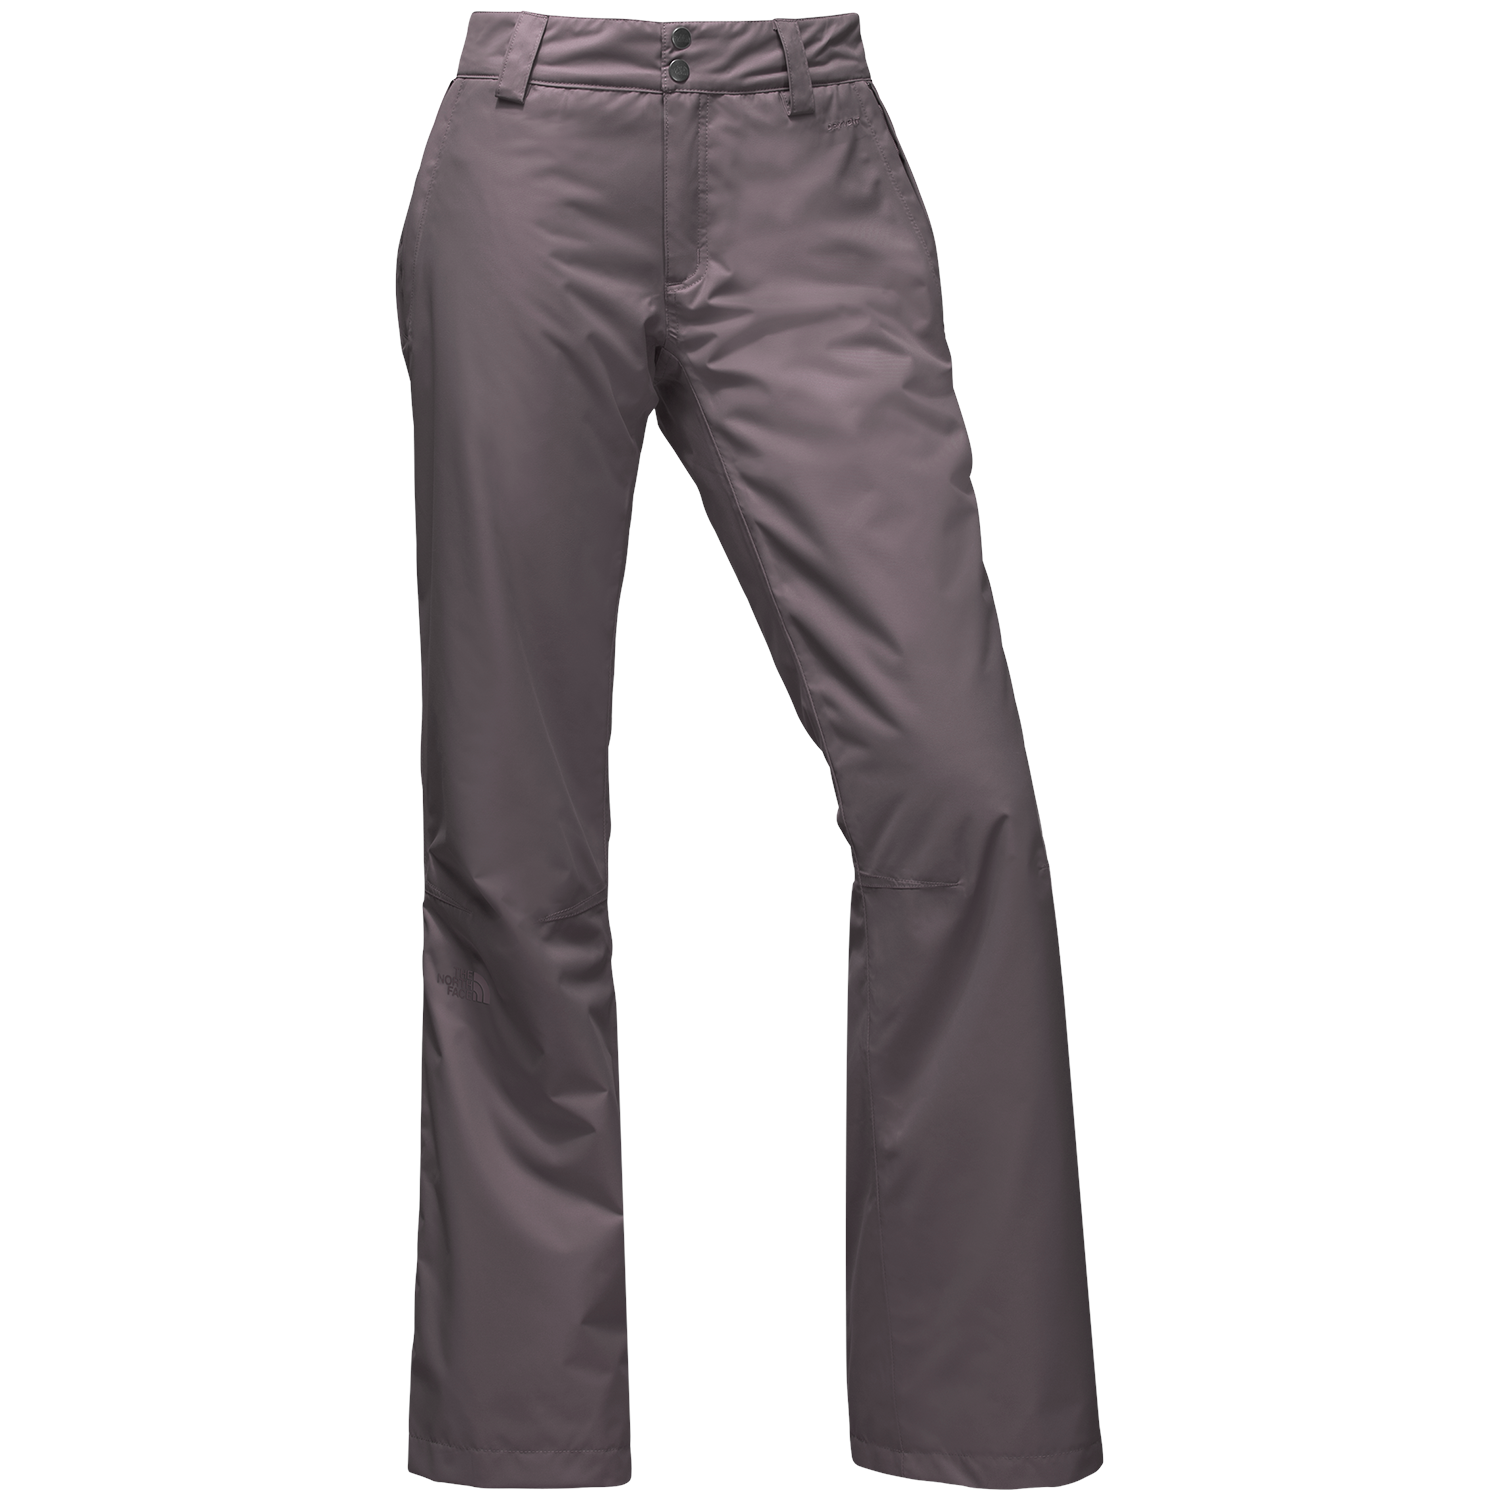 d6bced1a1 The North Face Sally Pants - Women's